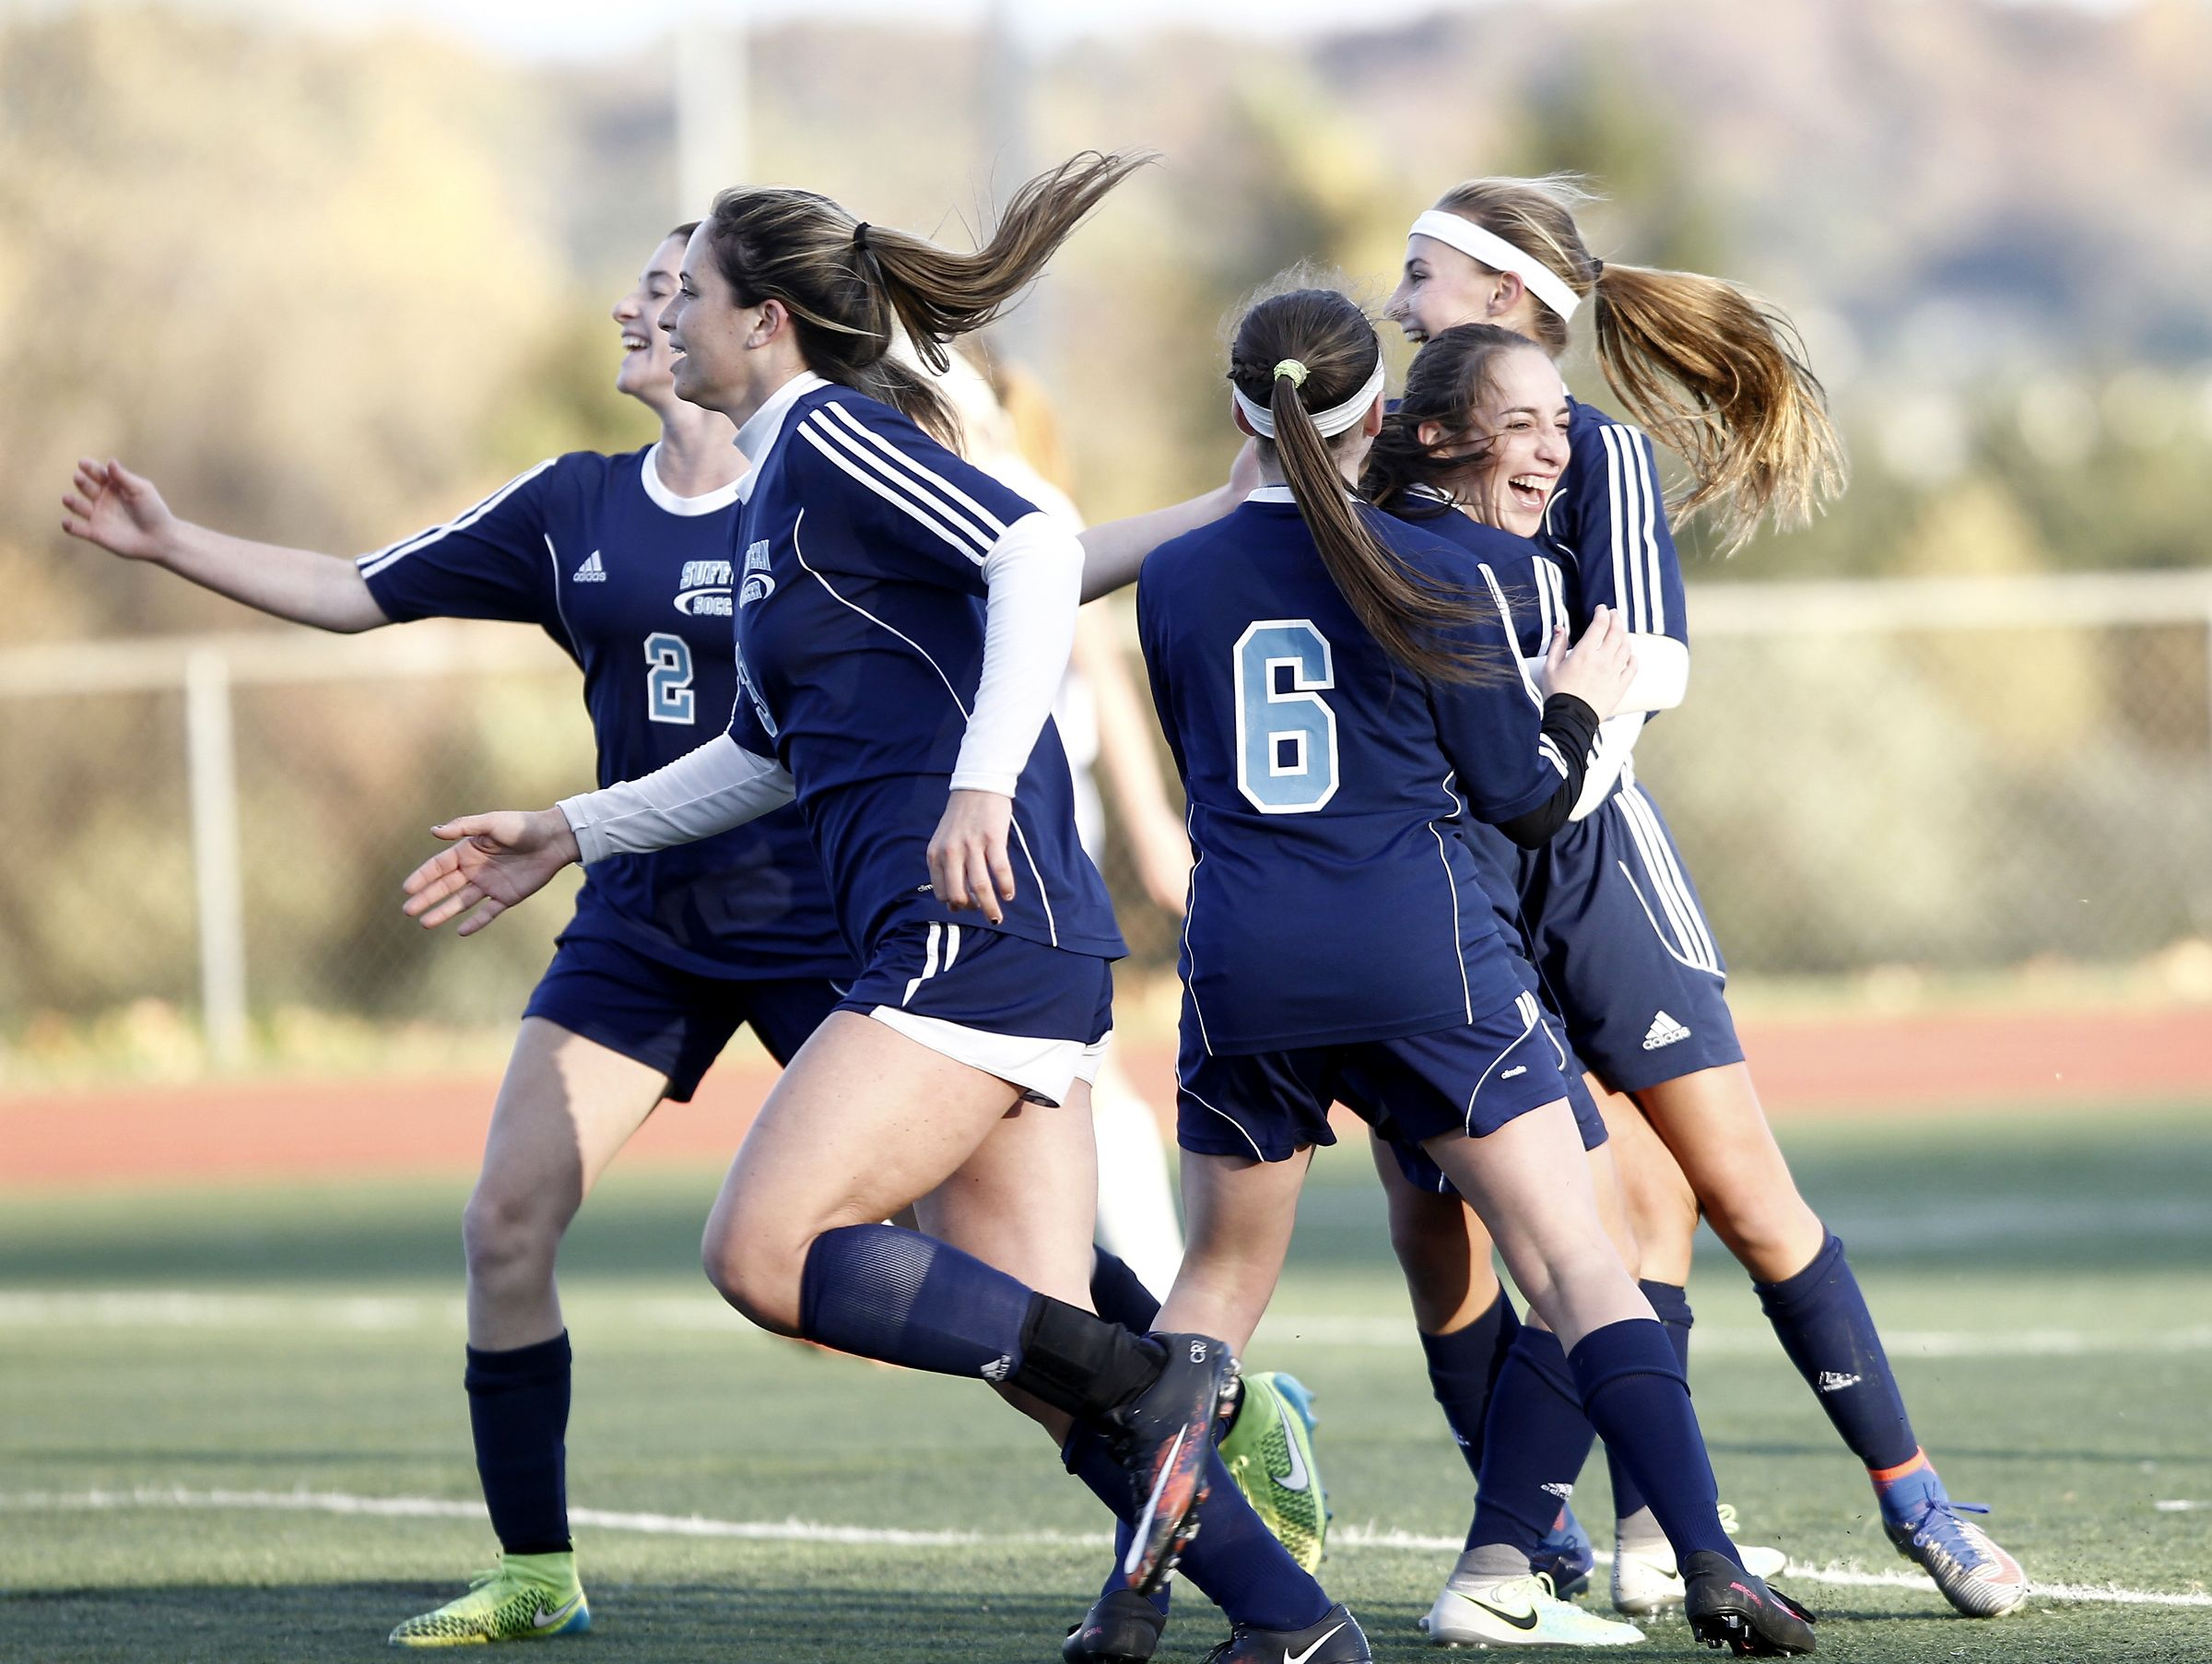 Suffern players celebrate a goal during their 2-0 win over Clarkstown South in the girls Class AA soccer quarterfinal at Clarkstown High School South in West Nyack on Tuesday, October 25, 2016.